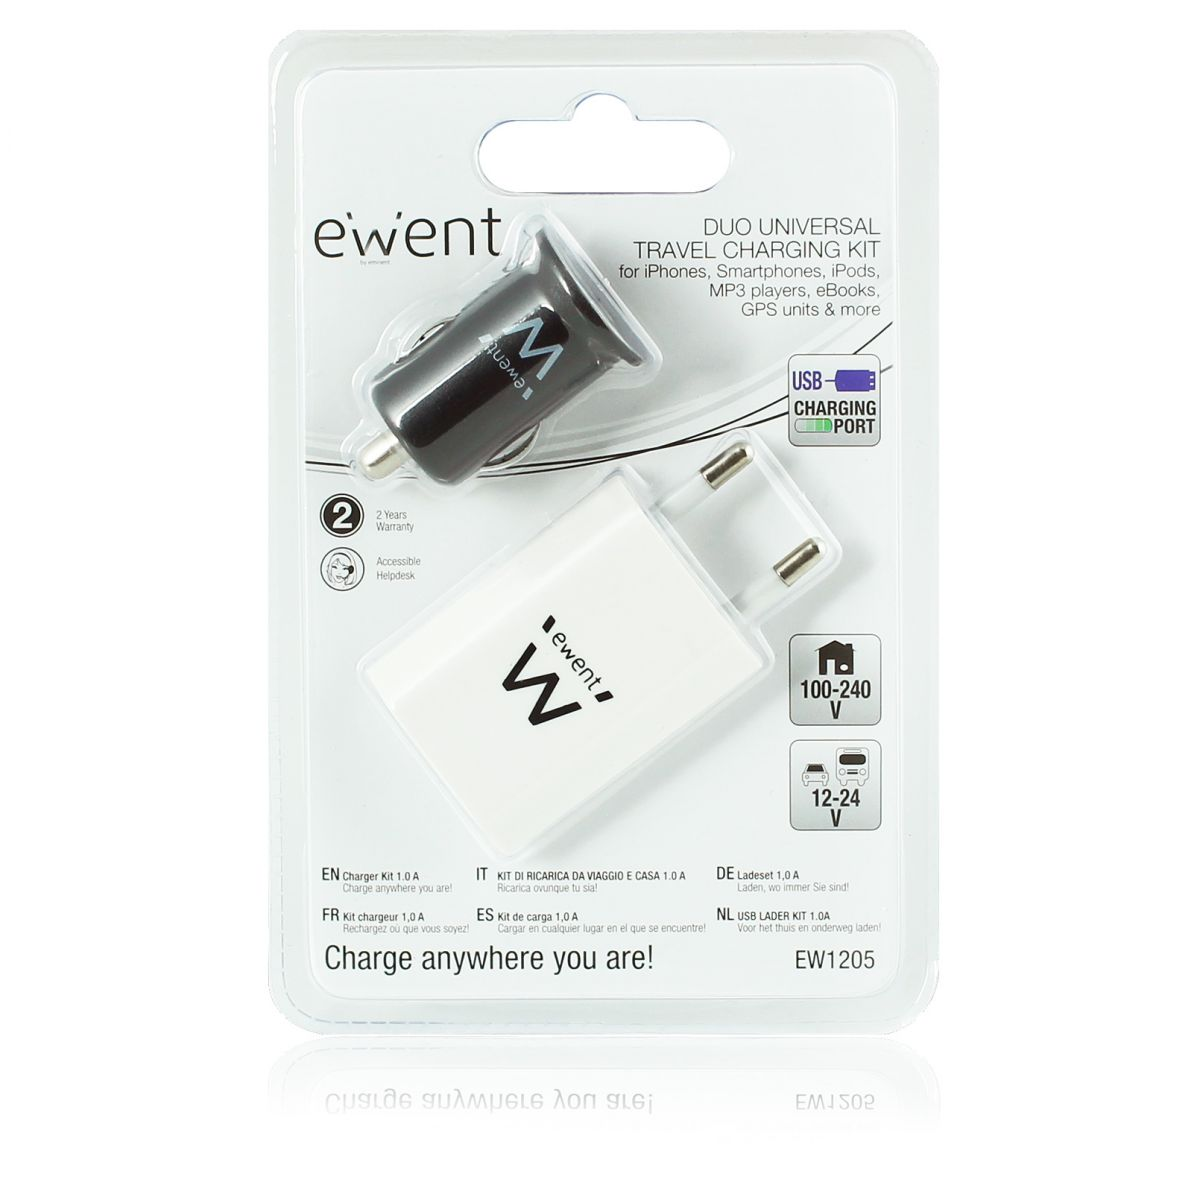 ewent ew1205 carhome charger 2x usb mobile devices